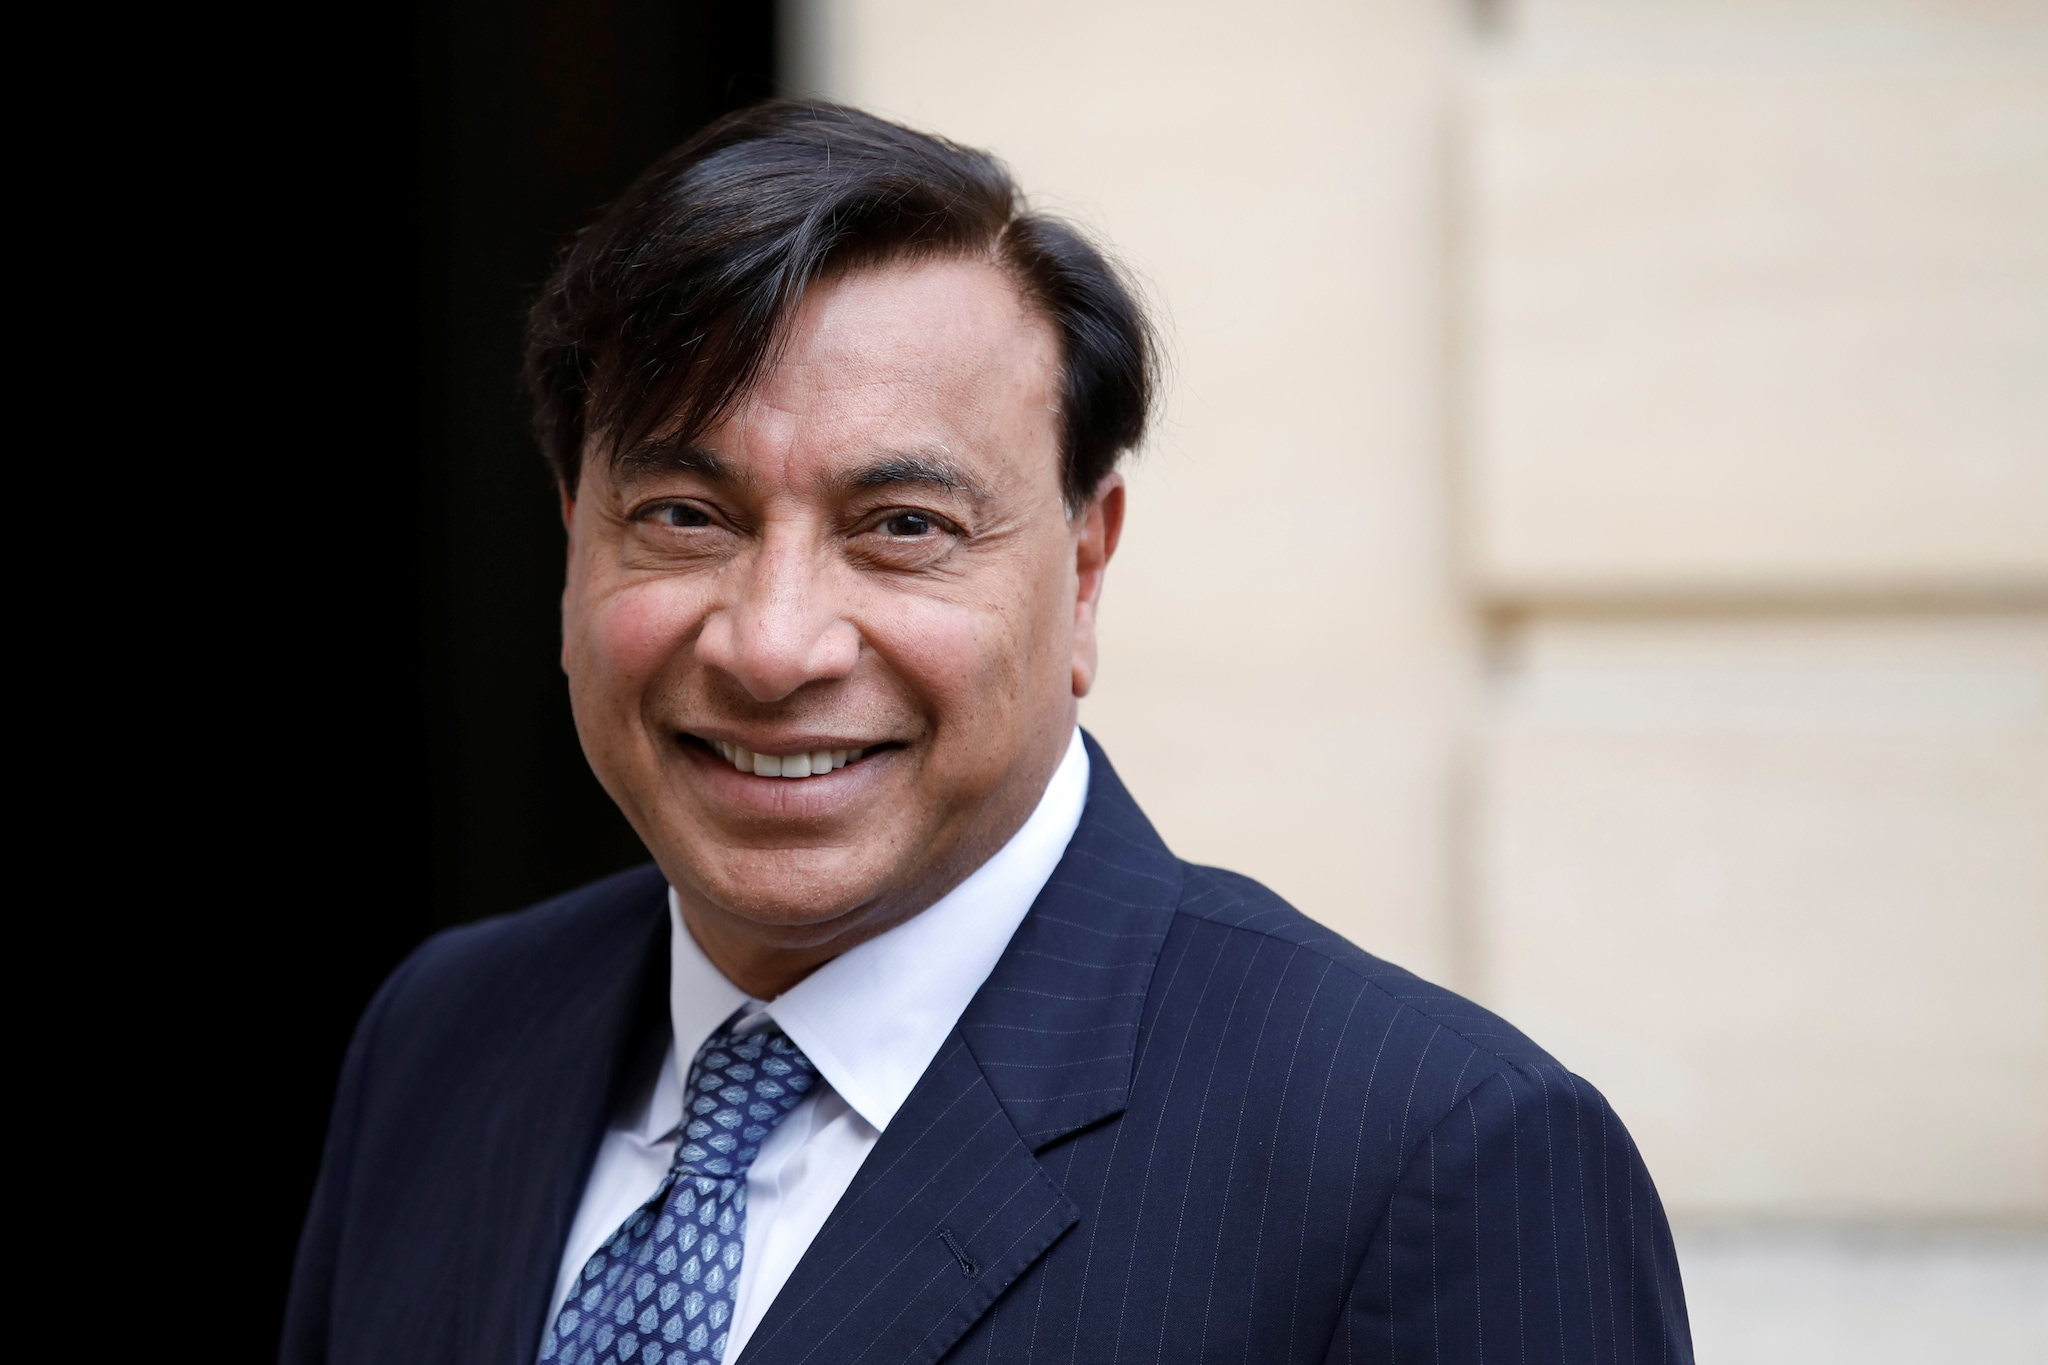 Lakshmi Mittal: Chairman and CEO, ArcelorMittal. Real Time Net Worth: $14.1 billion. Lakshmi Mittal serves as chairman and CEO of ArcelorMittal, the world's biggest steelmaker. Hailing from a steel clan, he separated from his siblings to start Mittal Steel then went on to merge the company with France's Arcelor in 2006. Benefiting from the steel recovery, the company reported a surge in net profit to $4.6 billion in 2017 on revenue of $68.7 billion. ArcelorMittal, along with Italian steel firm Marcegaglia, acquired Italy's loss making steel group Ilva for $2.1 billion in June 2017. ArcelorMittal has partnered with Japan's Nippon Steel to bid for billionaire siblings Shashi and Ravi Ruia's debt-strapped Essar Steel.